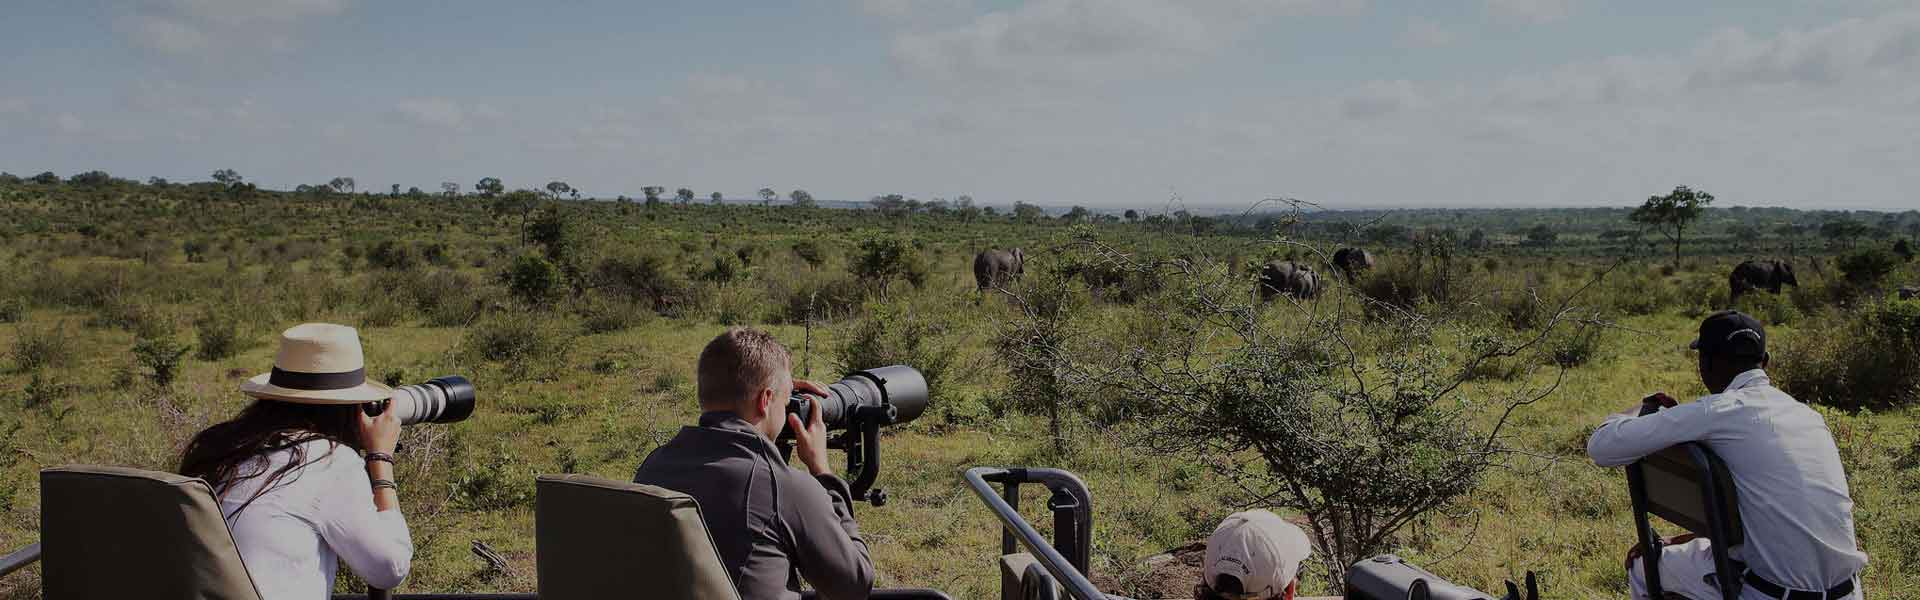 Tanzania Photographic Safaris